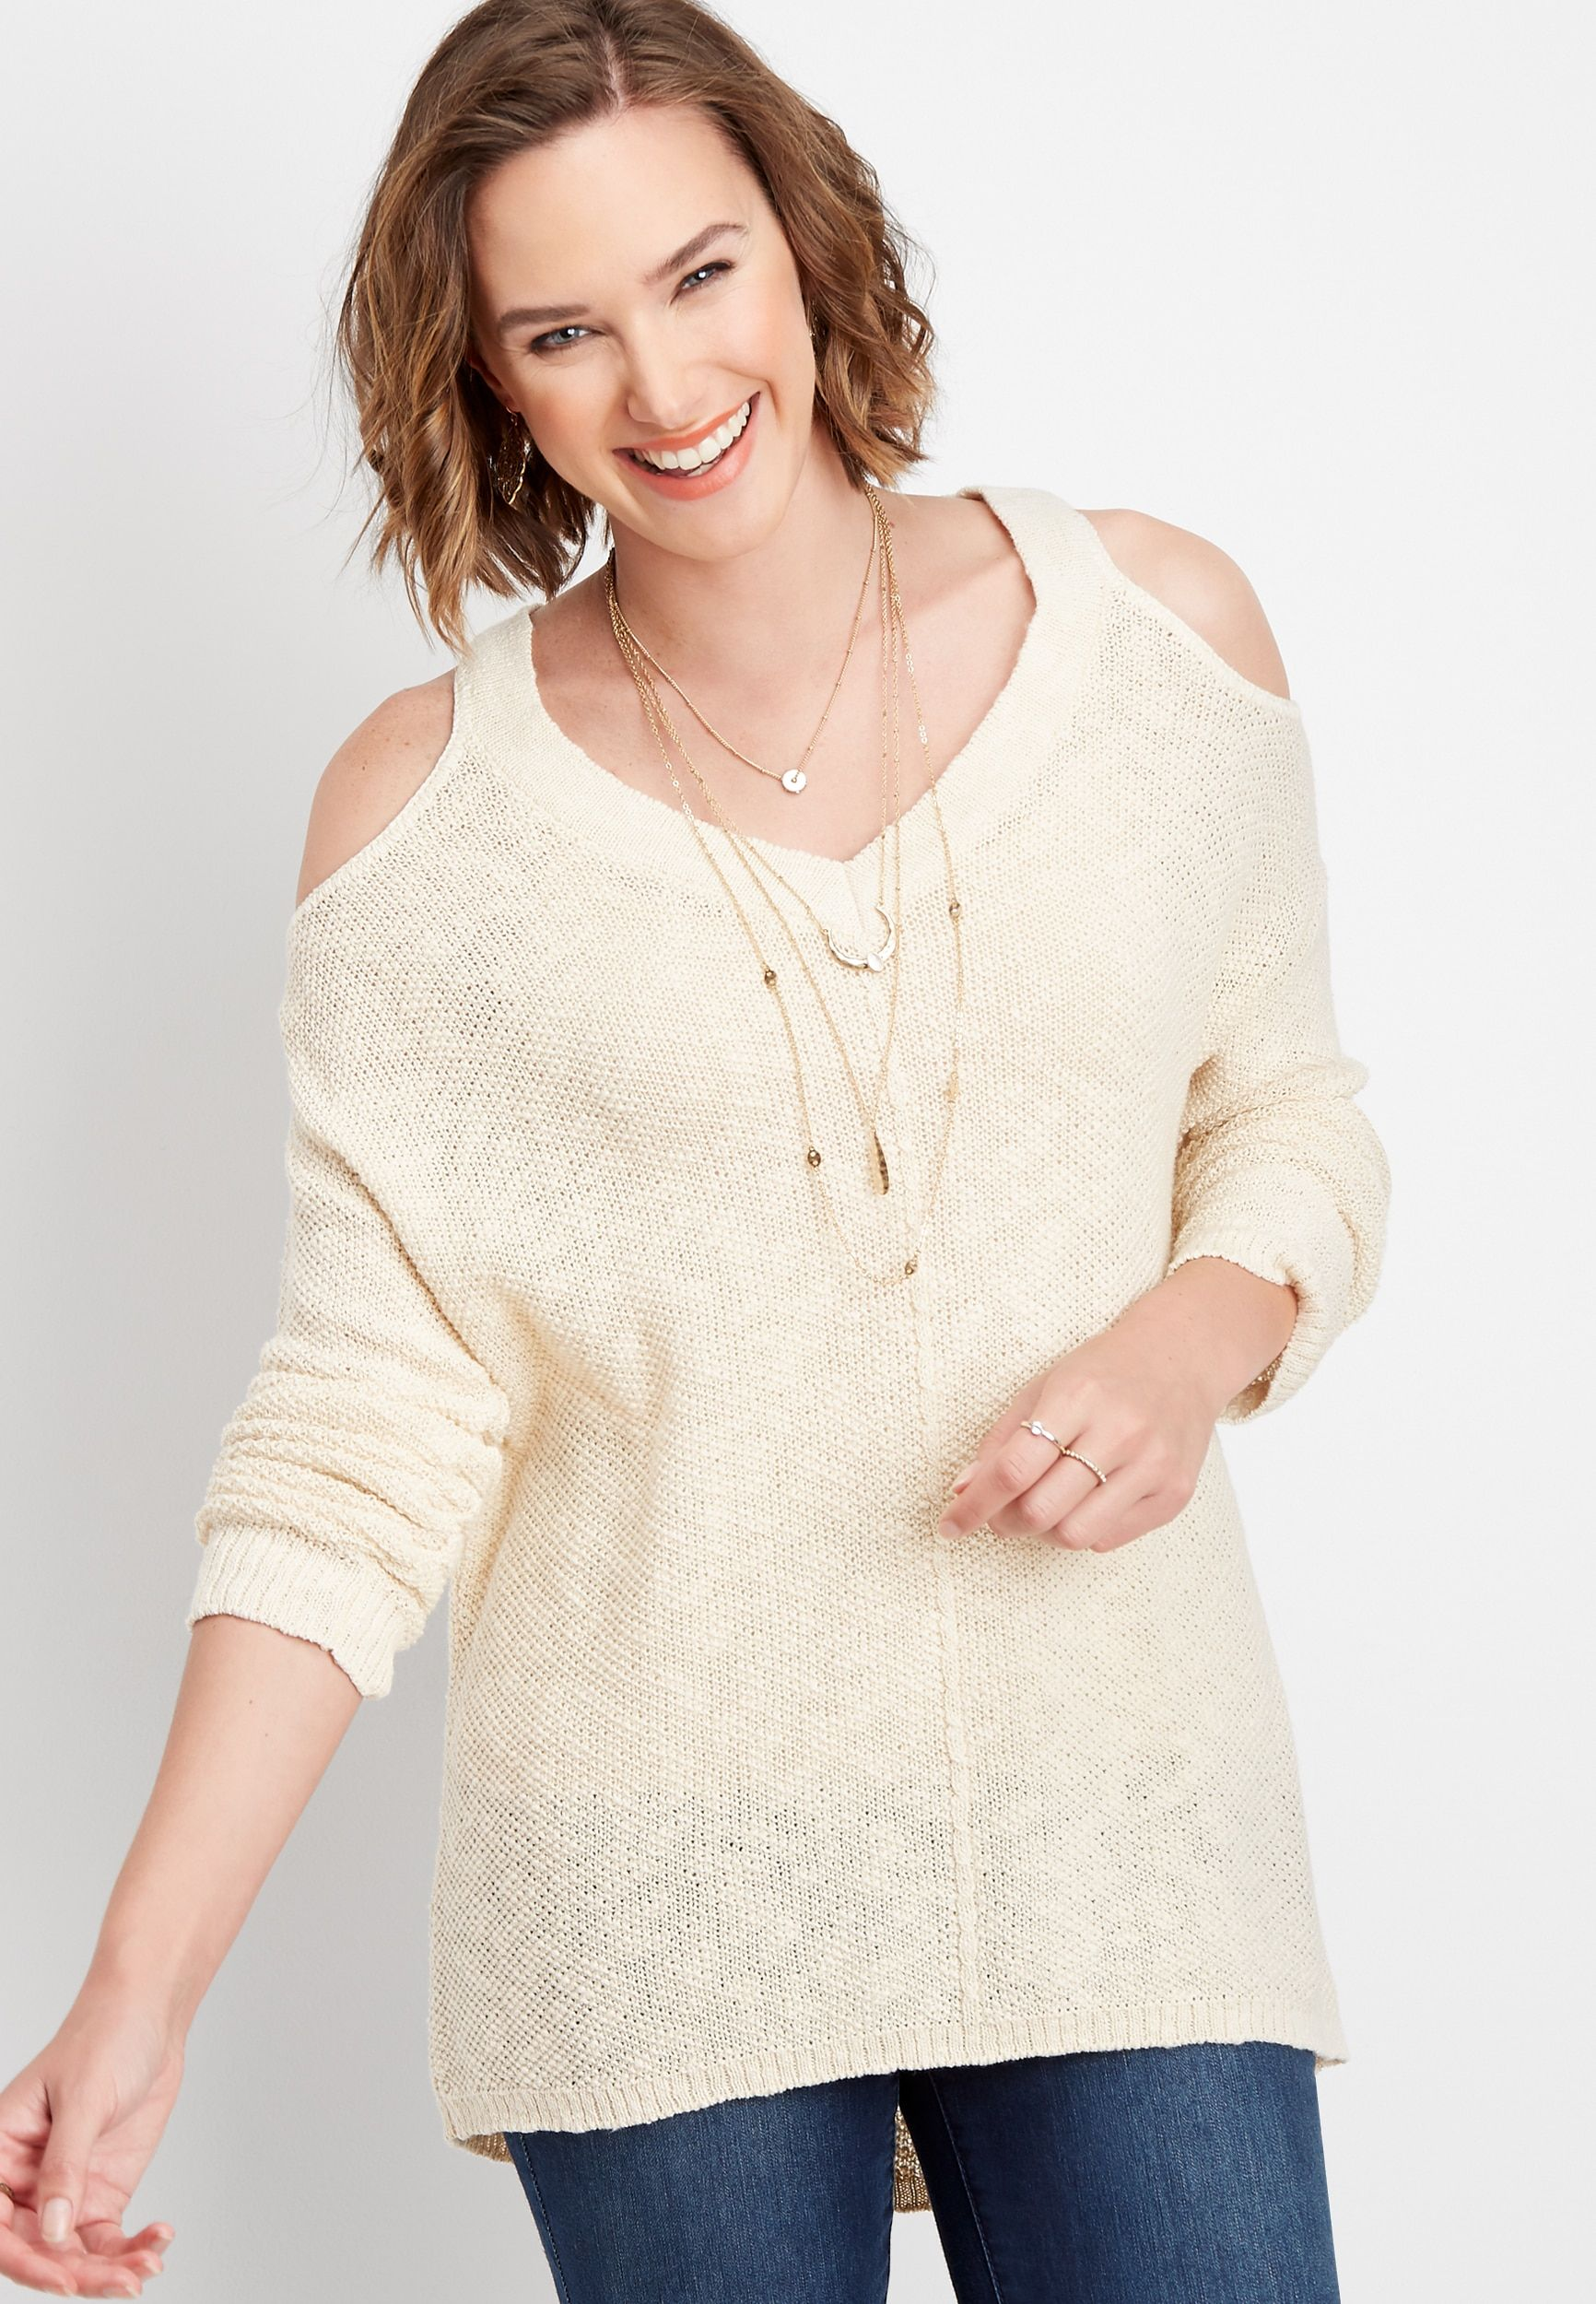 Maurices Womens Solid Long Sleeve Cold Shoulder Pullover Beige – Size X Small